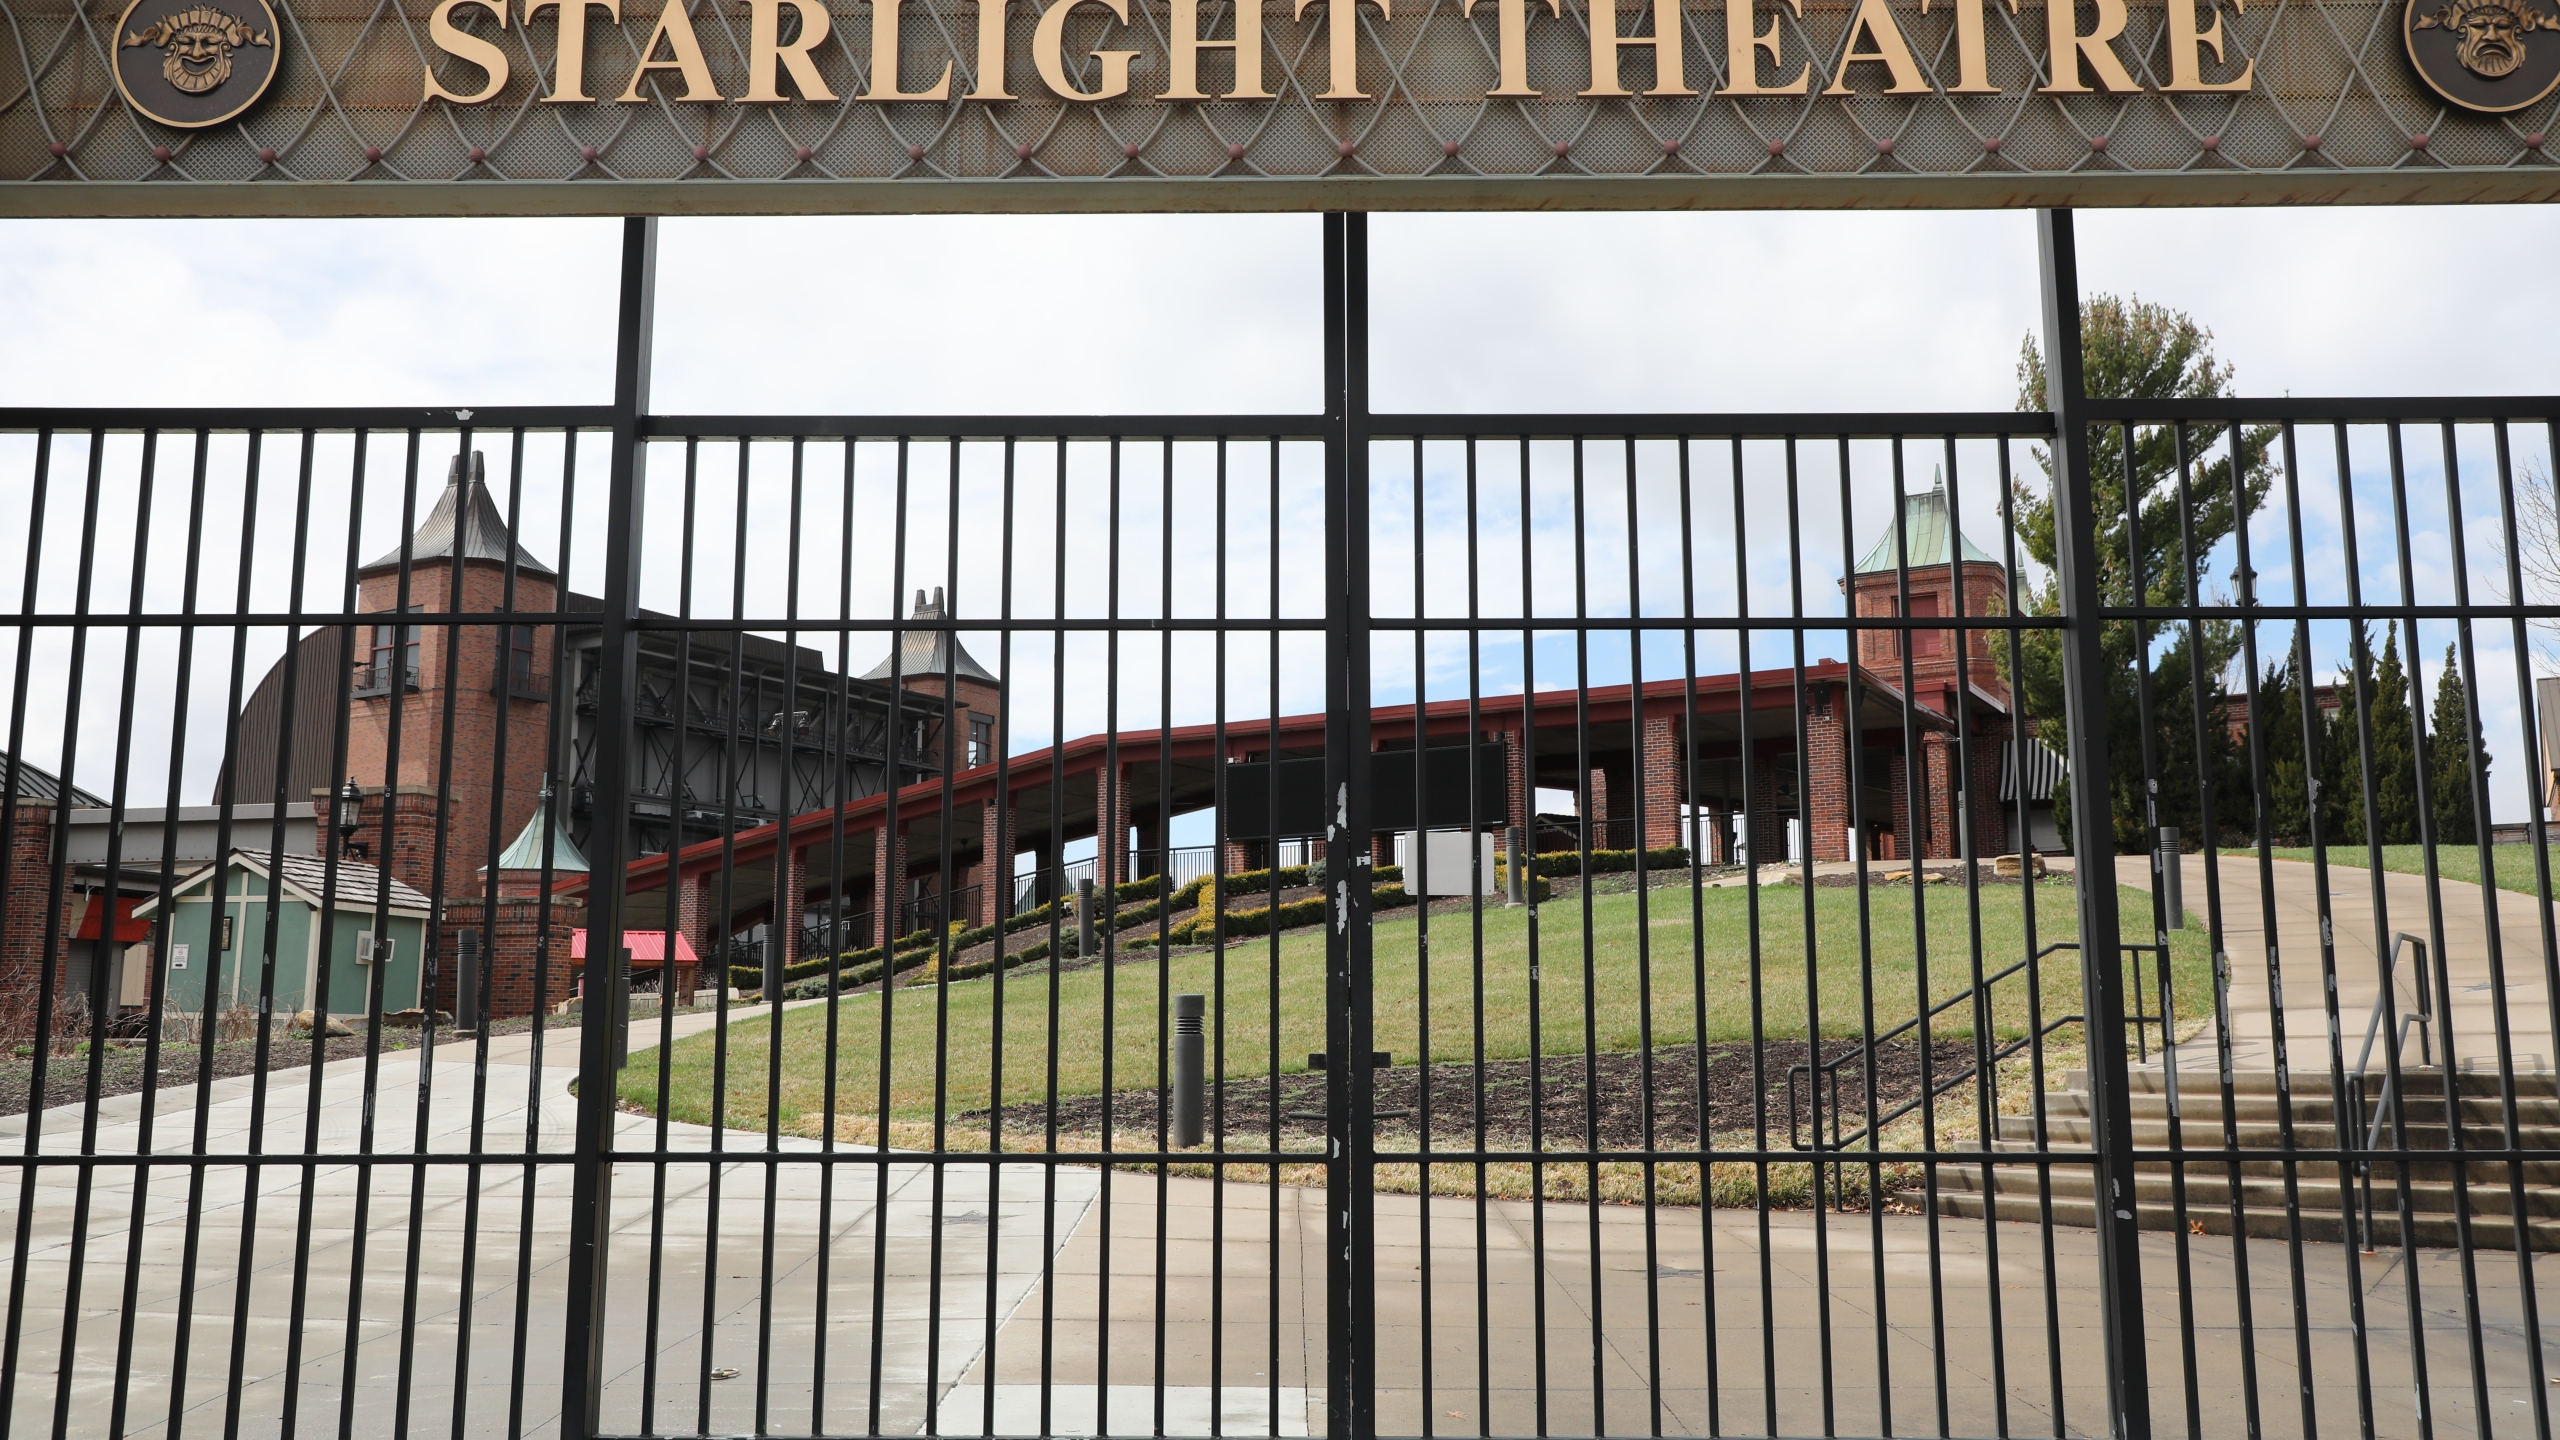 Picture of Starlight Theatre sign